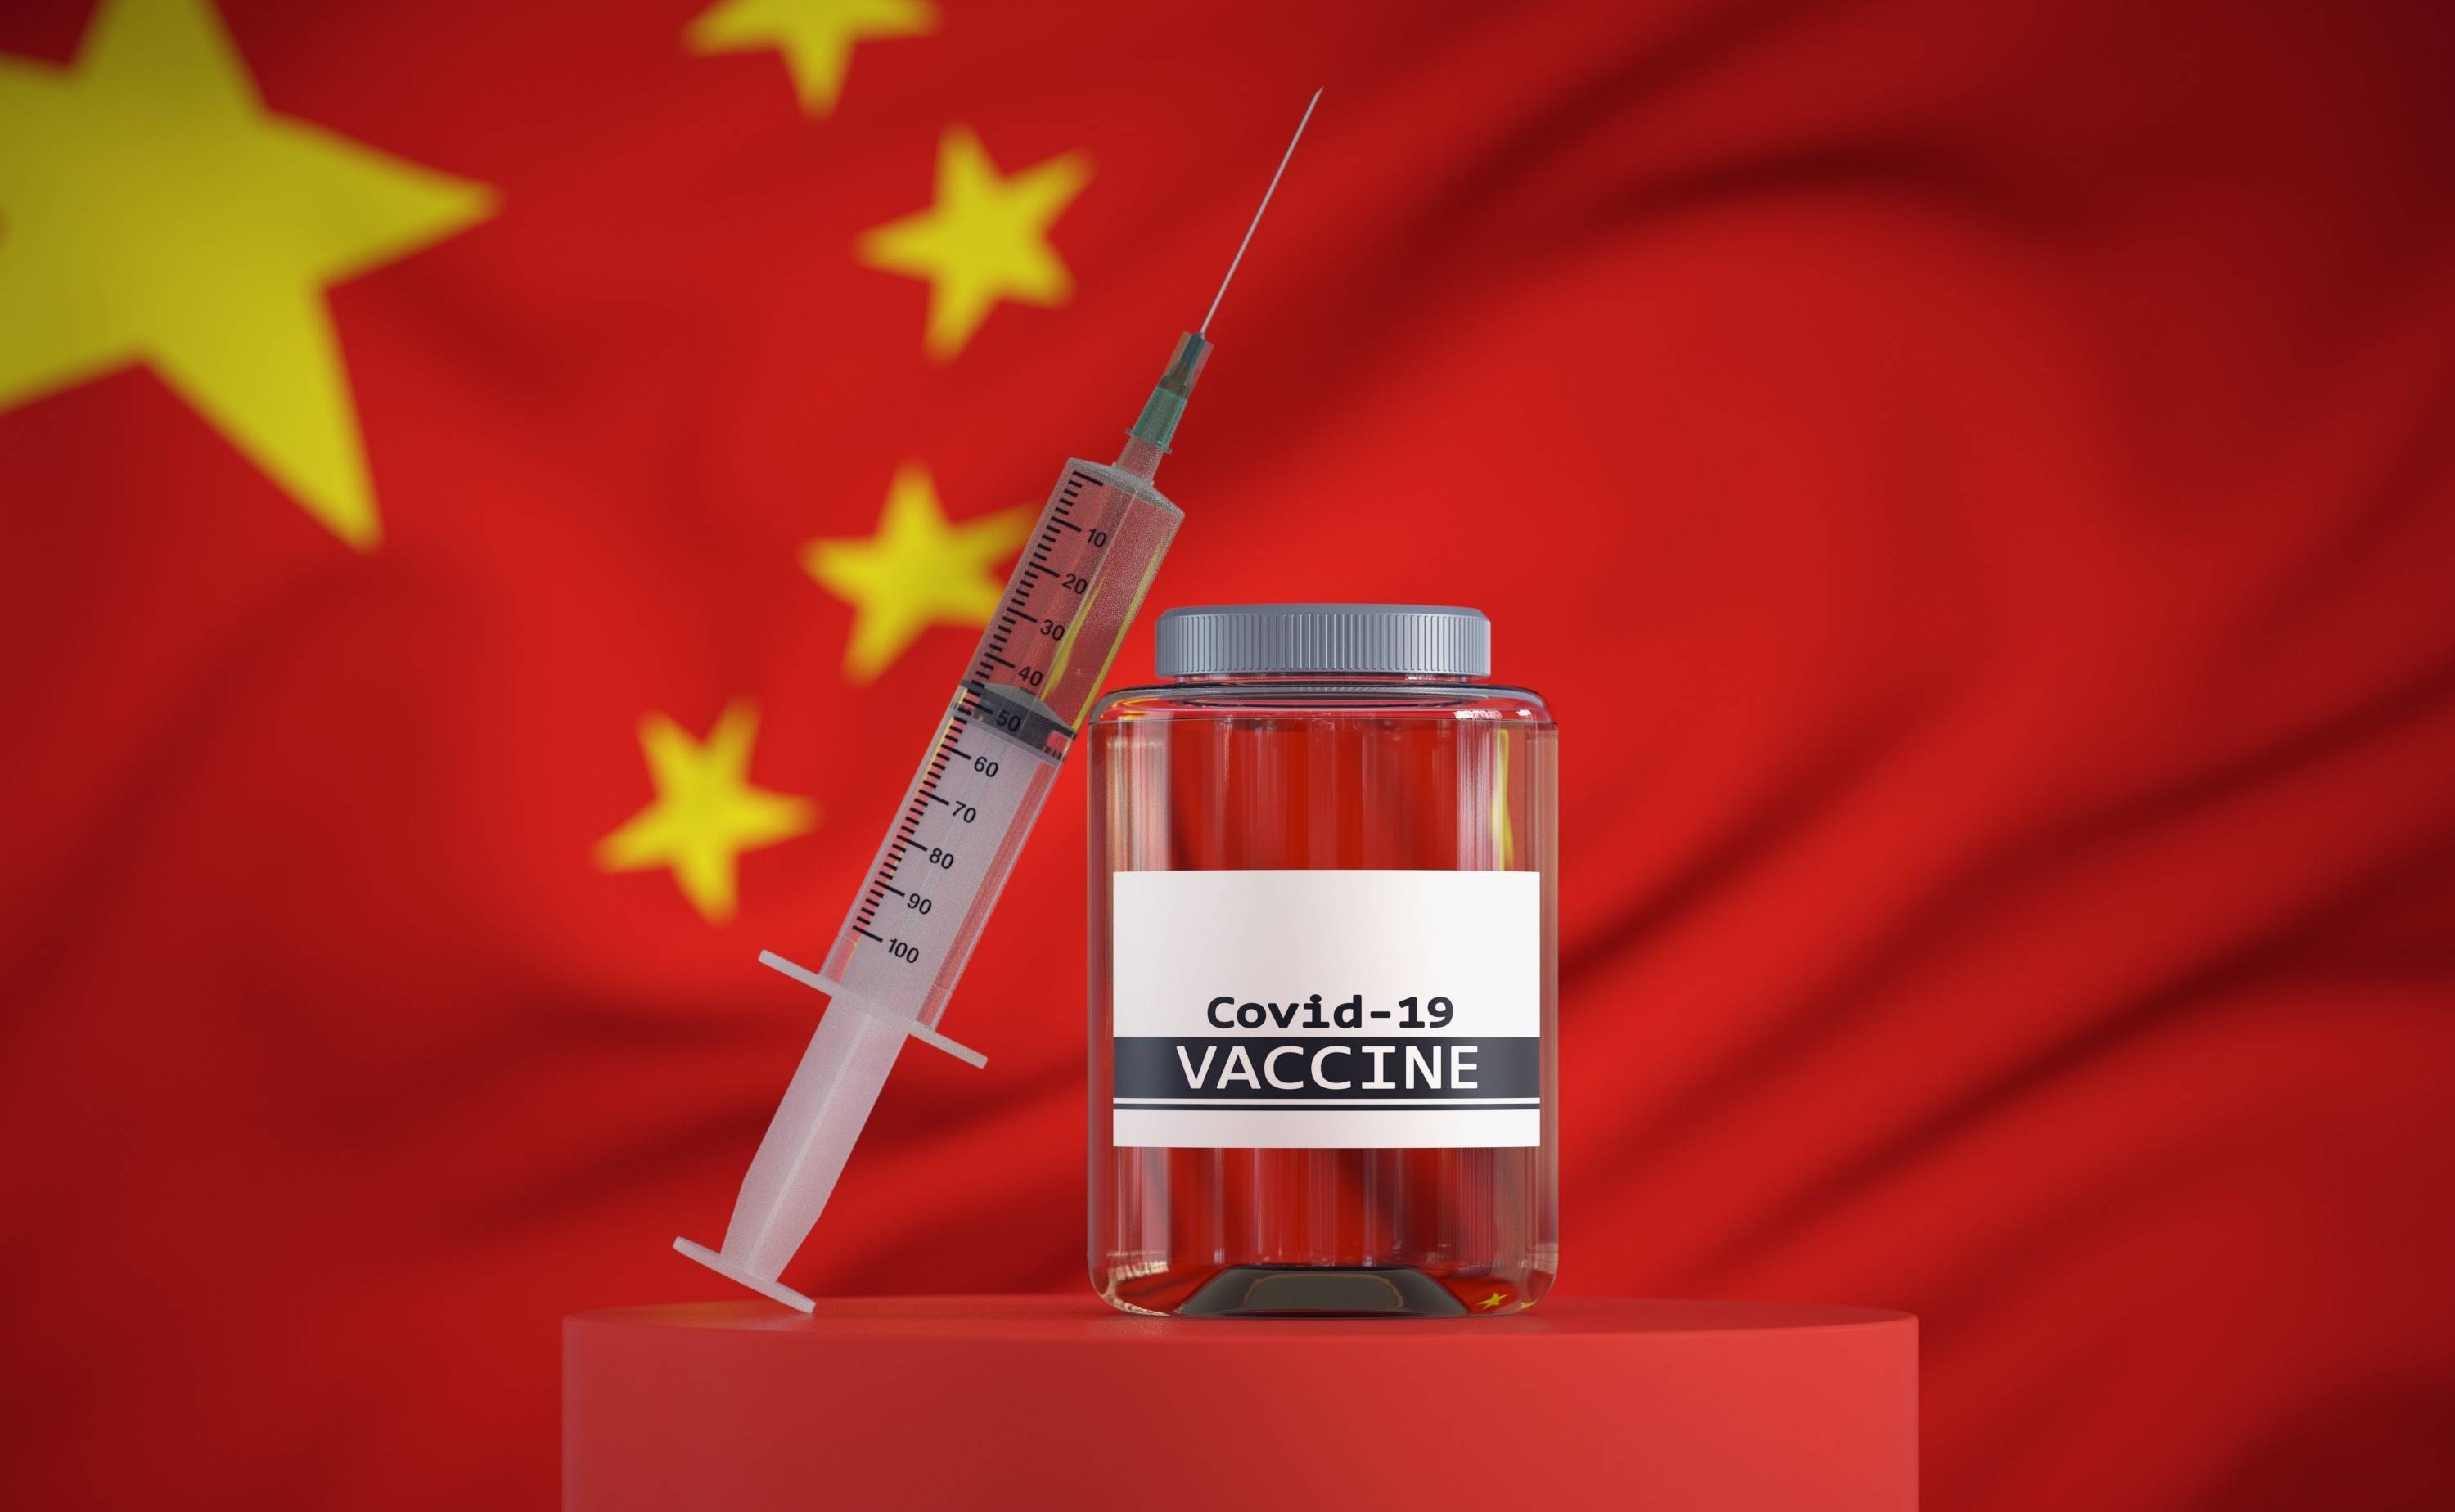 Chinese company shows early signs of promising COVID-19 vaccine.